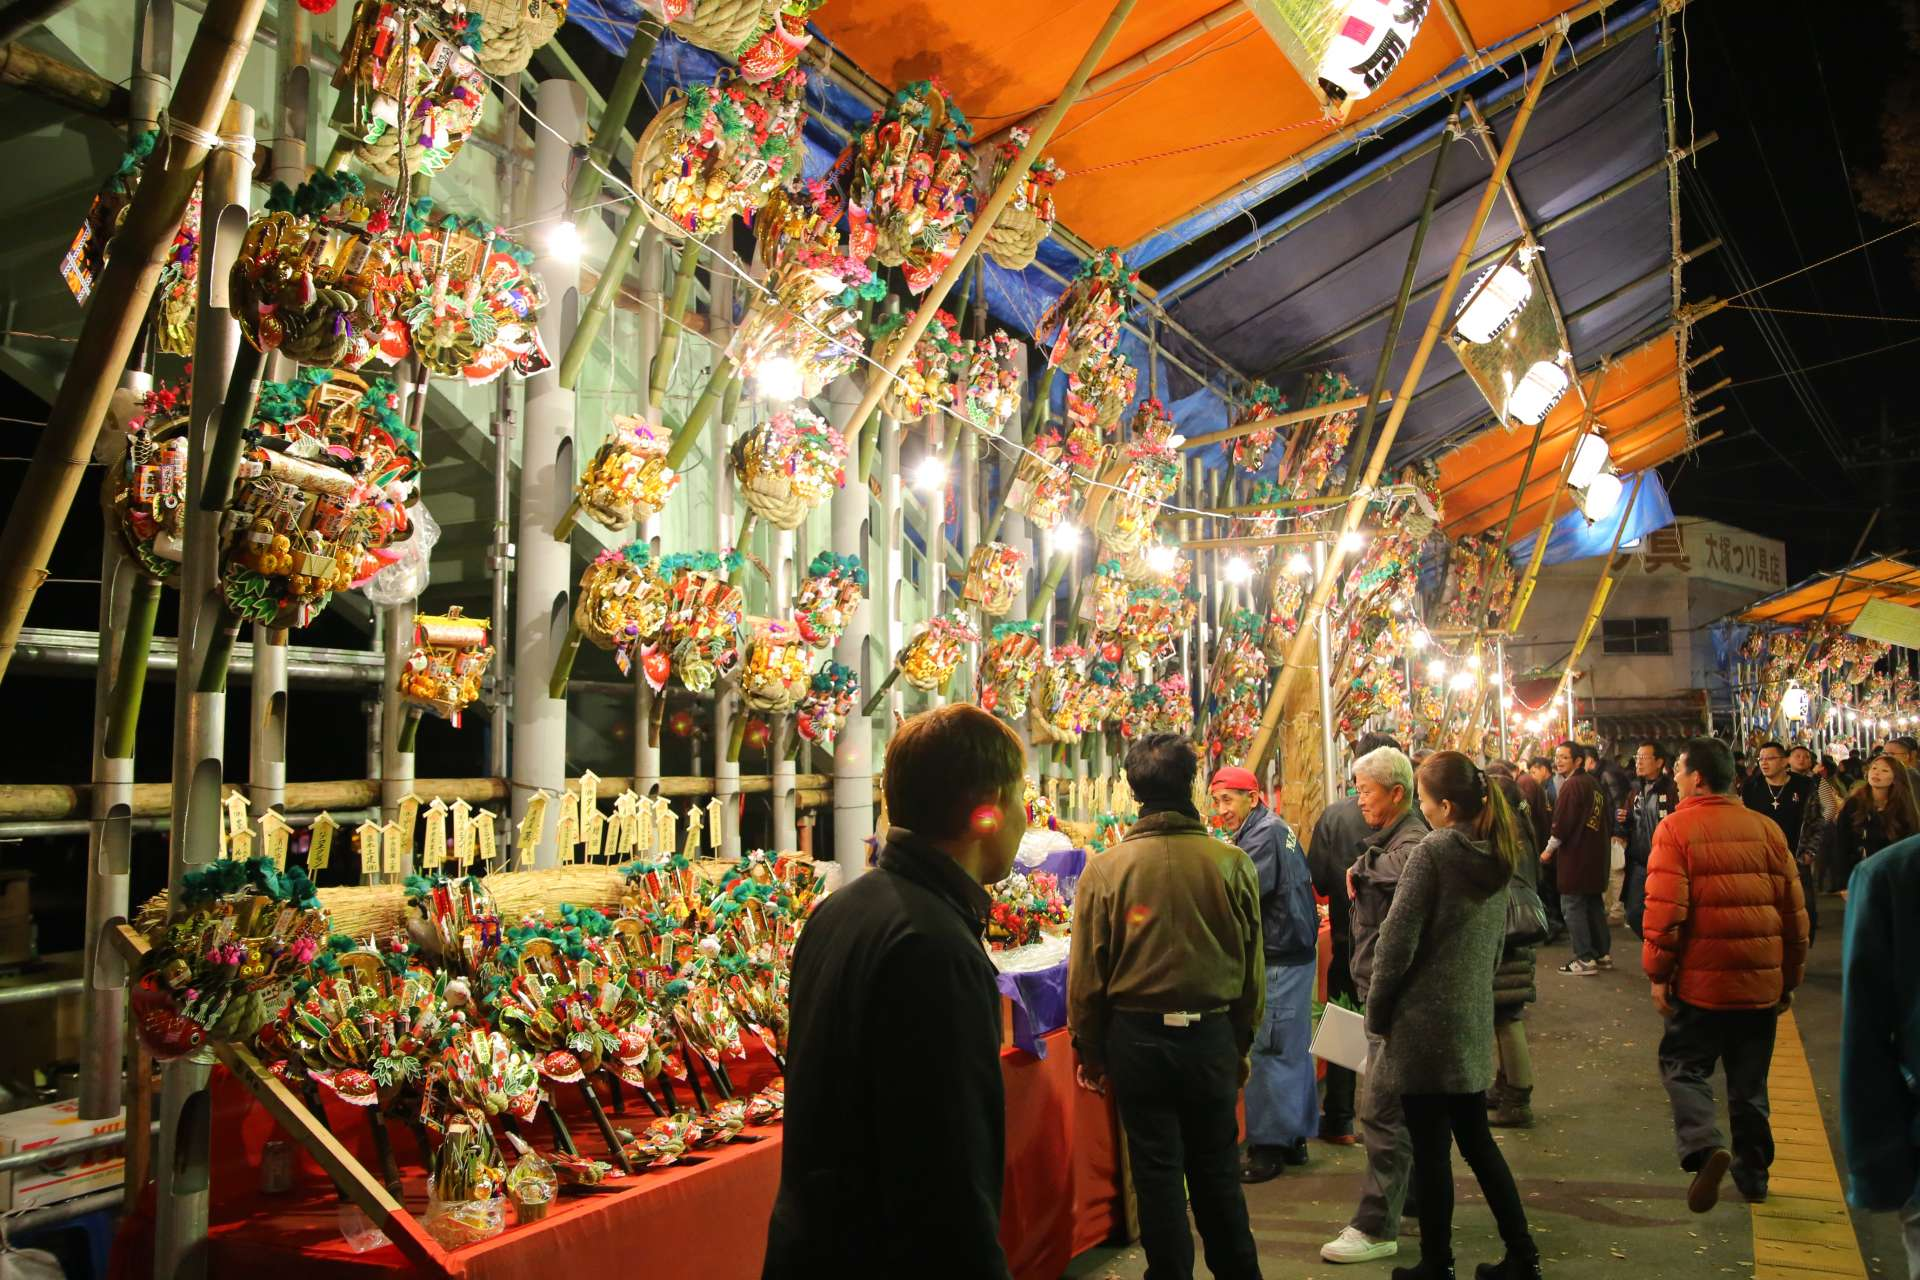 Dazzling bamboo rakes and charms lining the street stalls. Even just looking is fun.